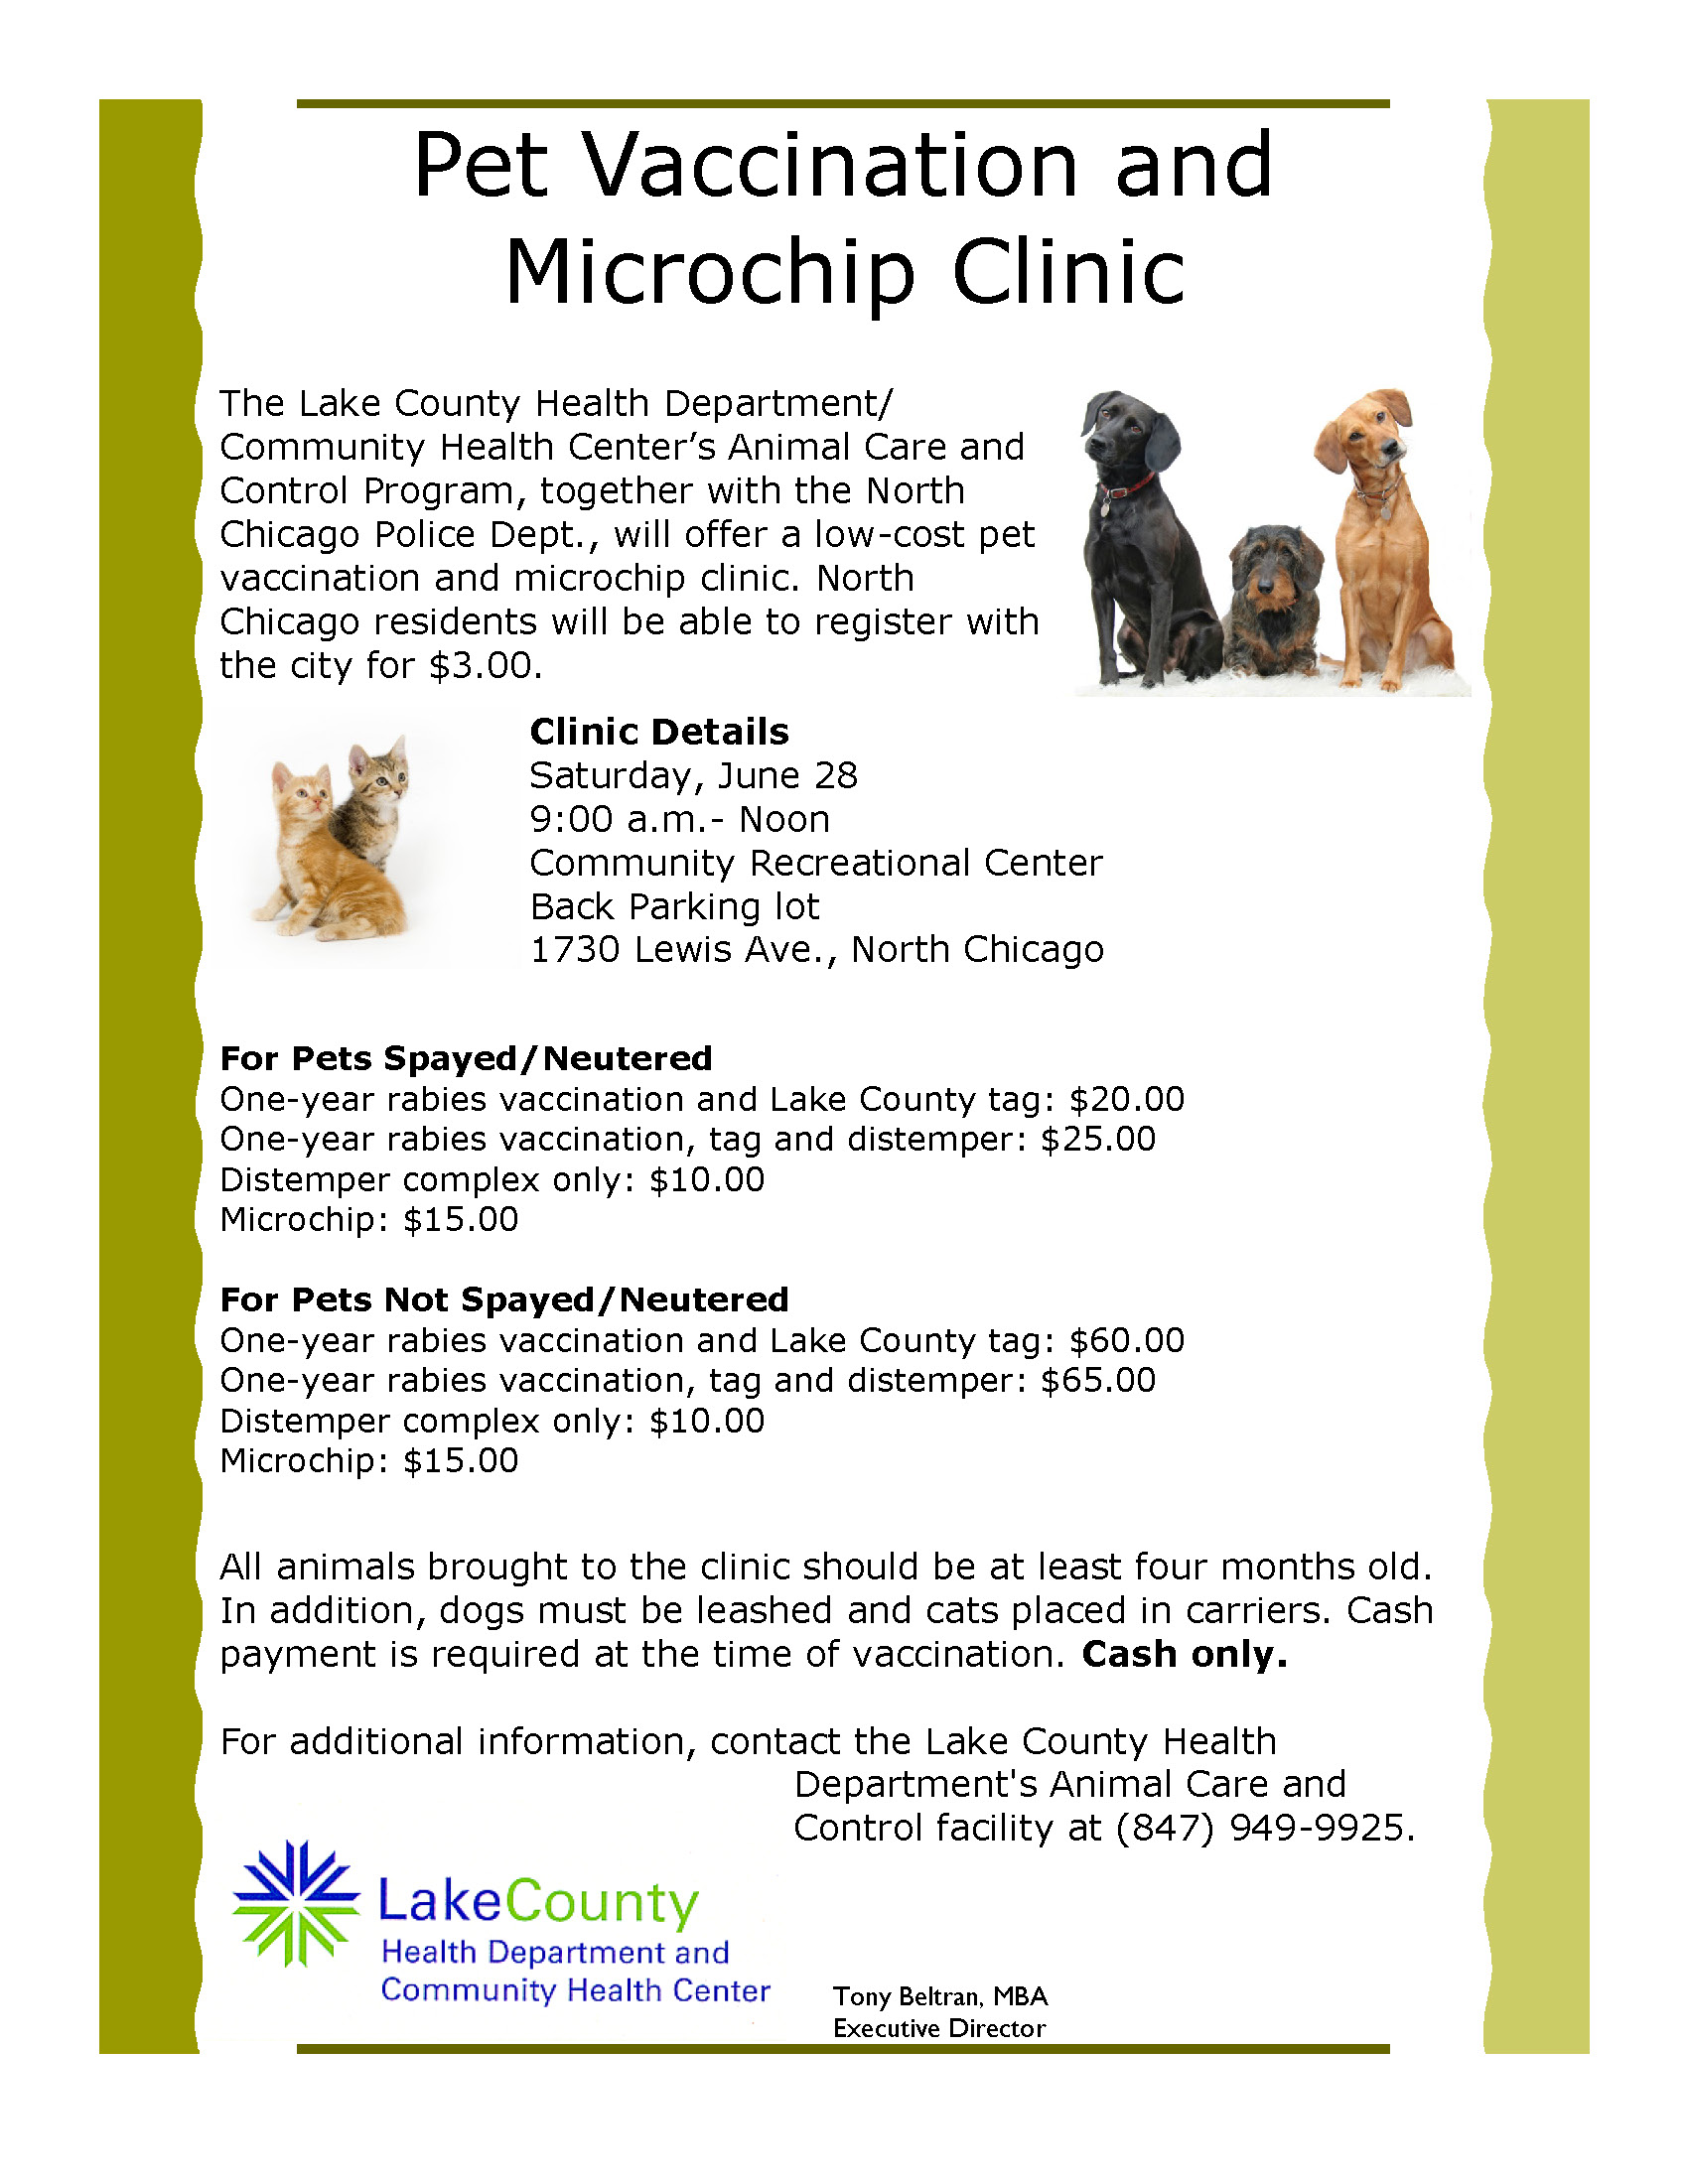 North_Chicago_clinic_flyer